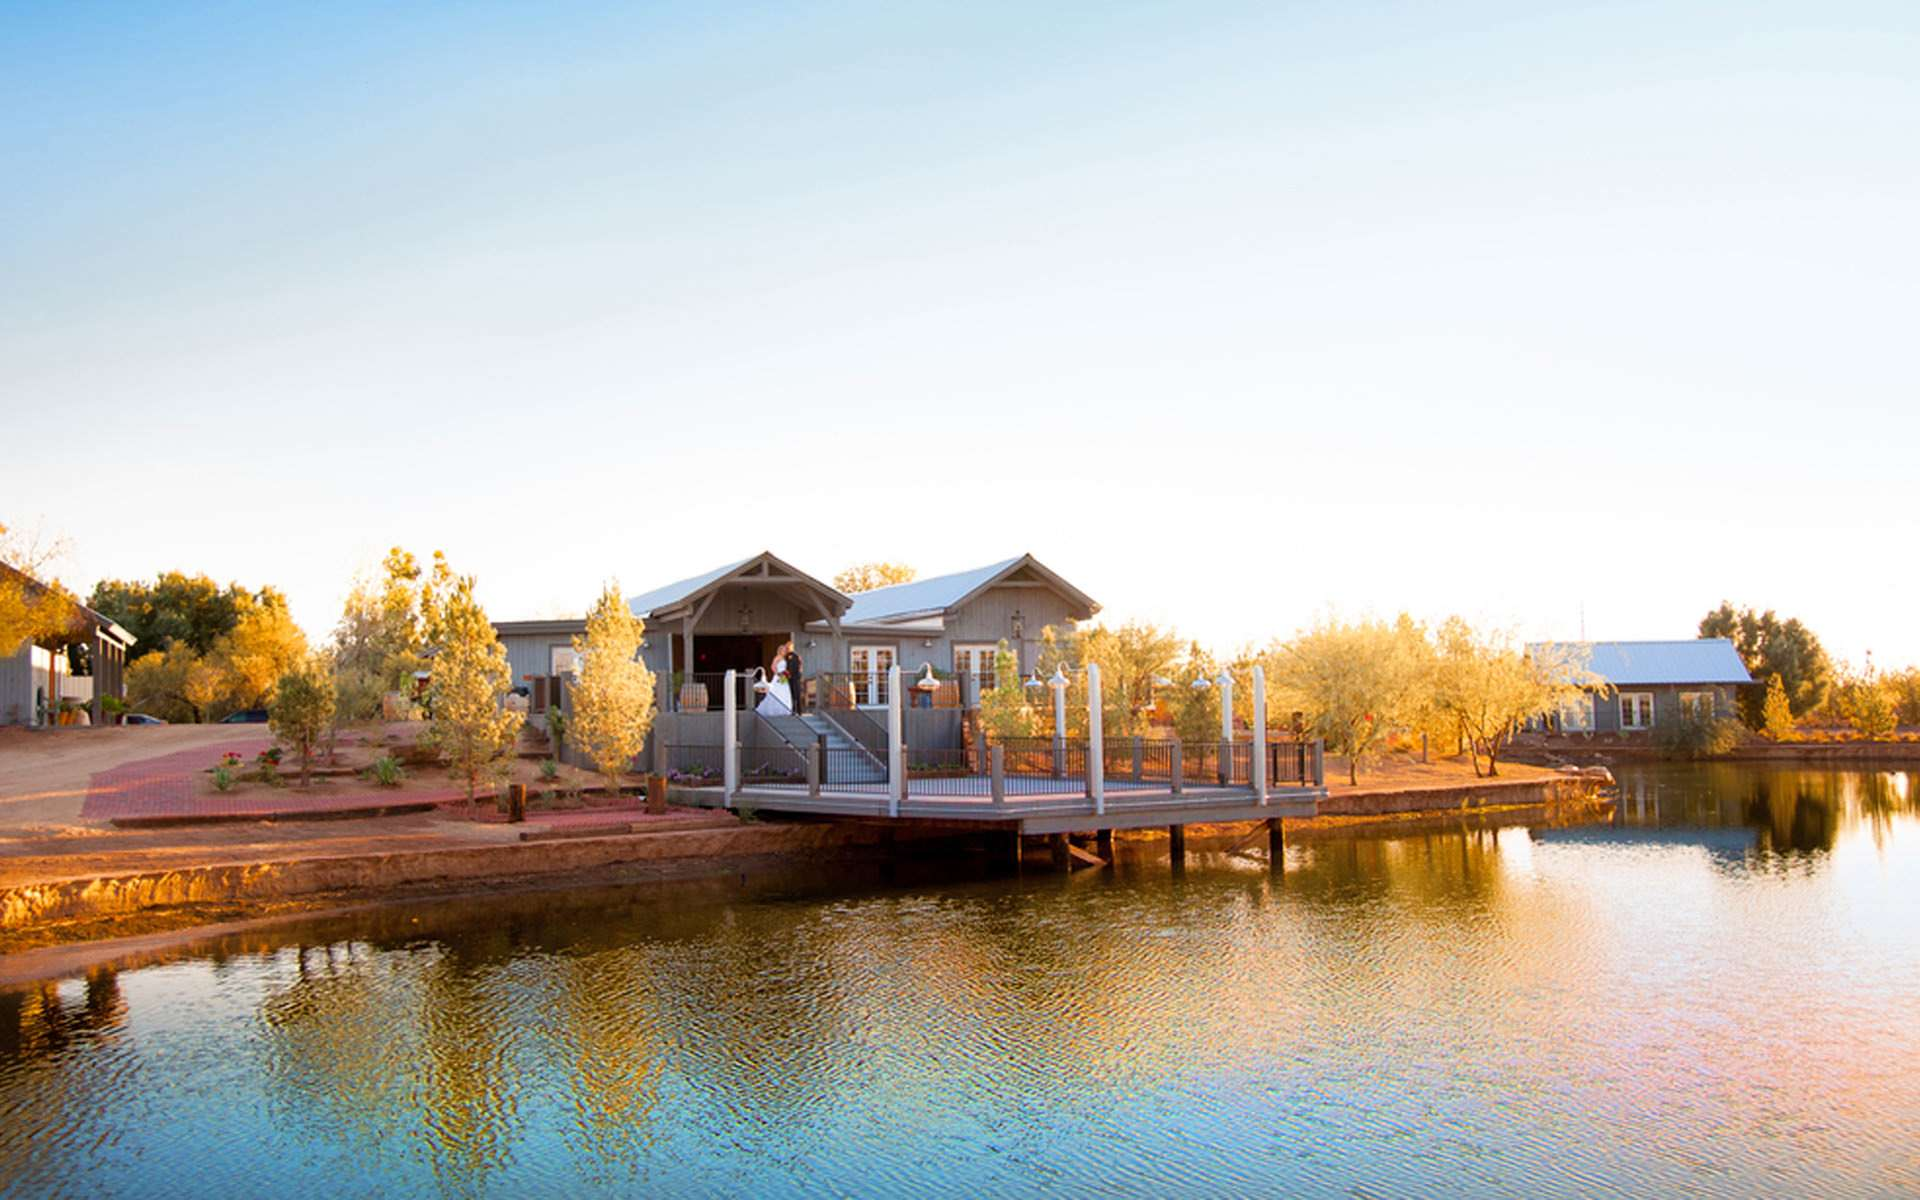 The Windmill Winery | The Windmill Winery in Florence, Arizona ...